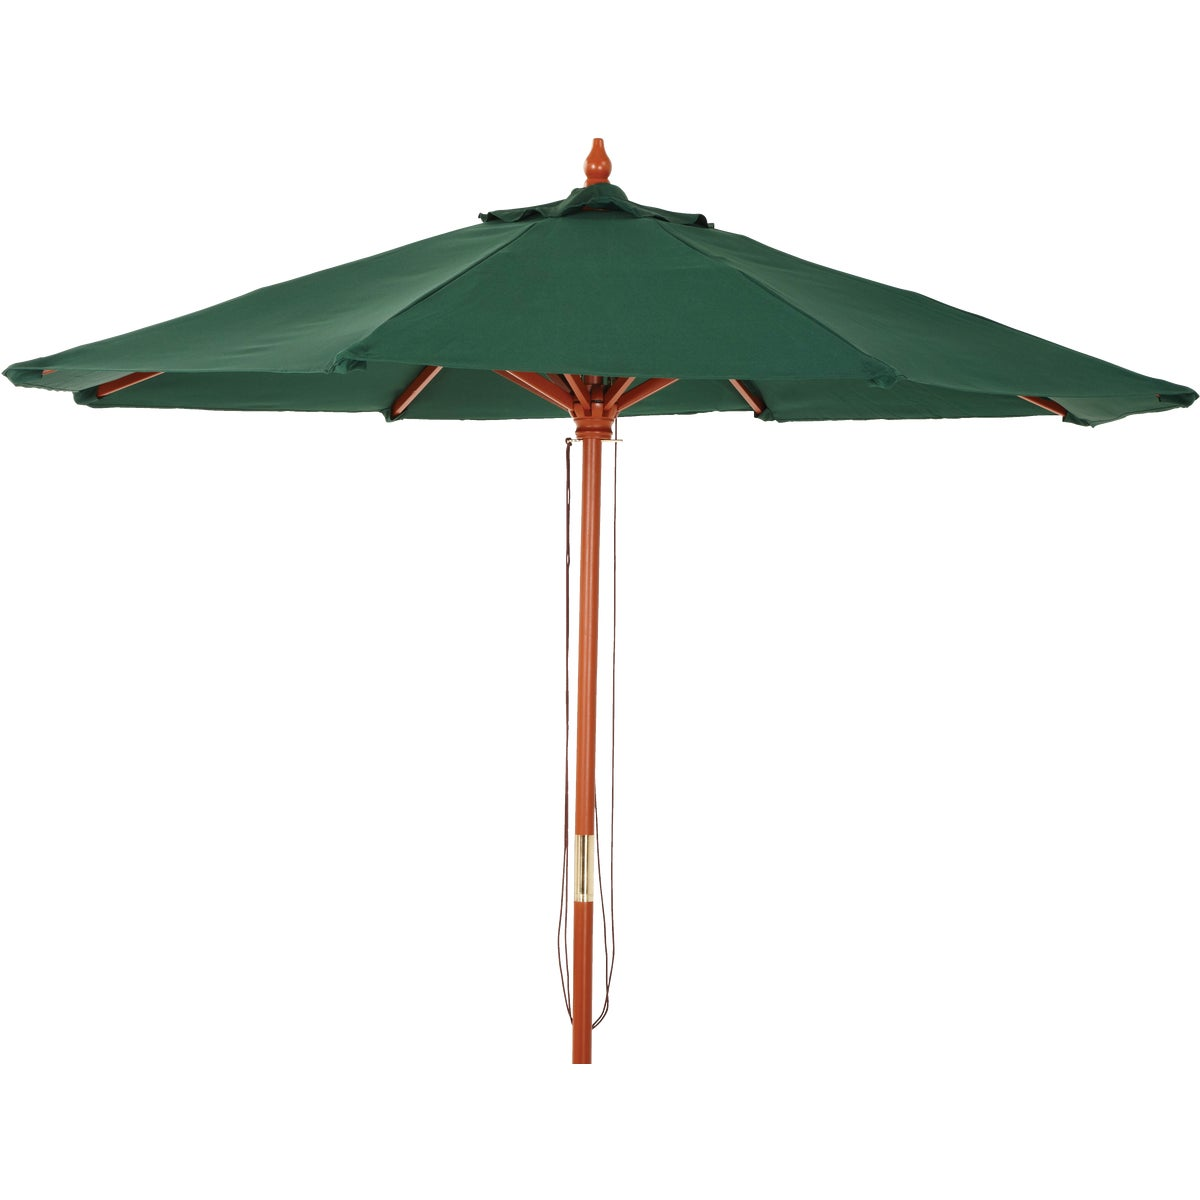 7.5' MARKET GRN UMBRELLA - TJWU-003A-230-GRN by Do it Best